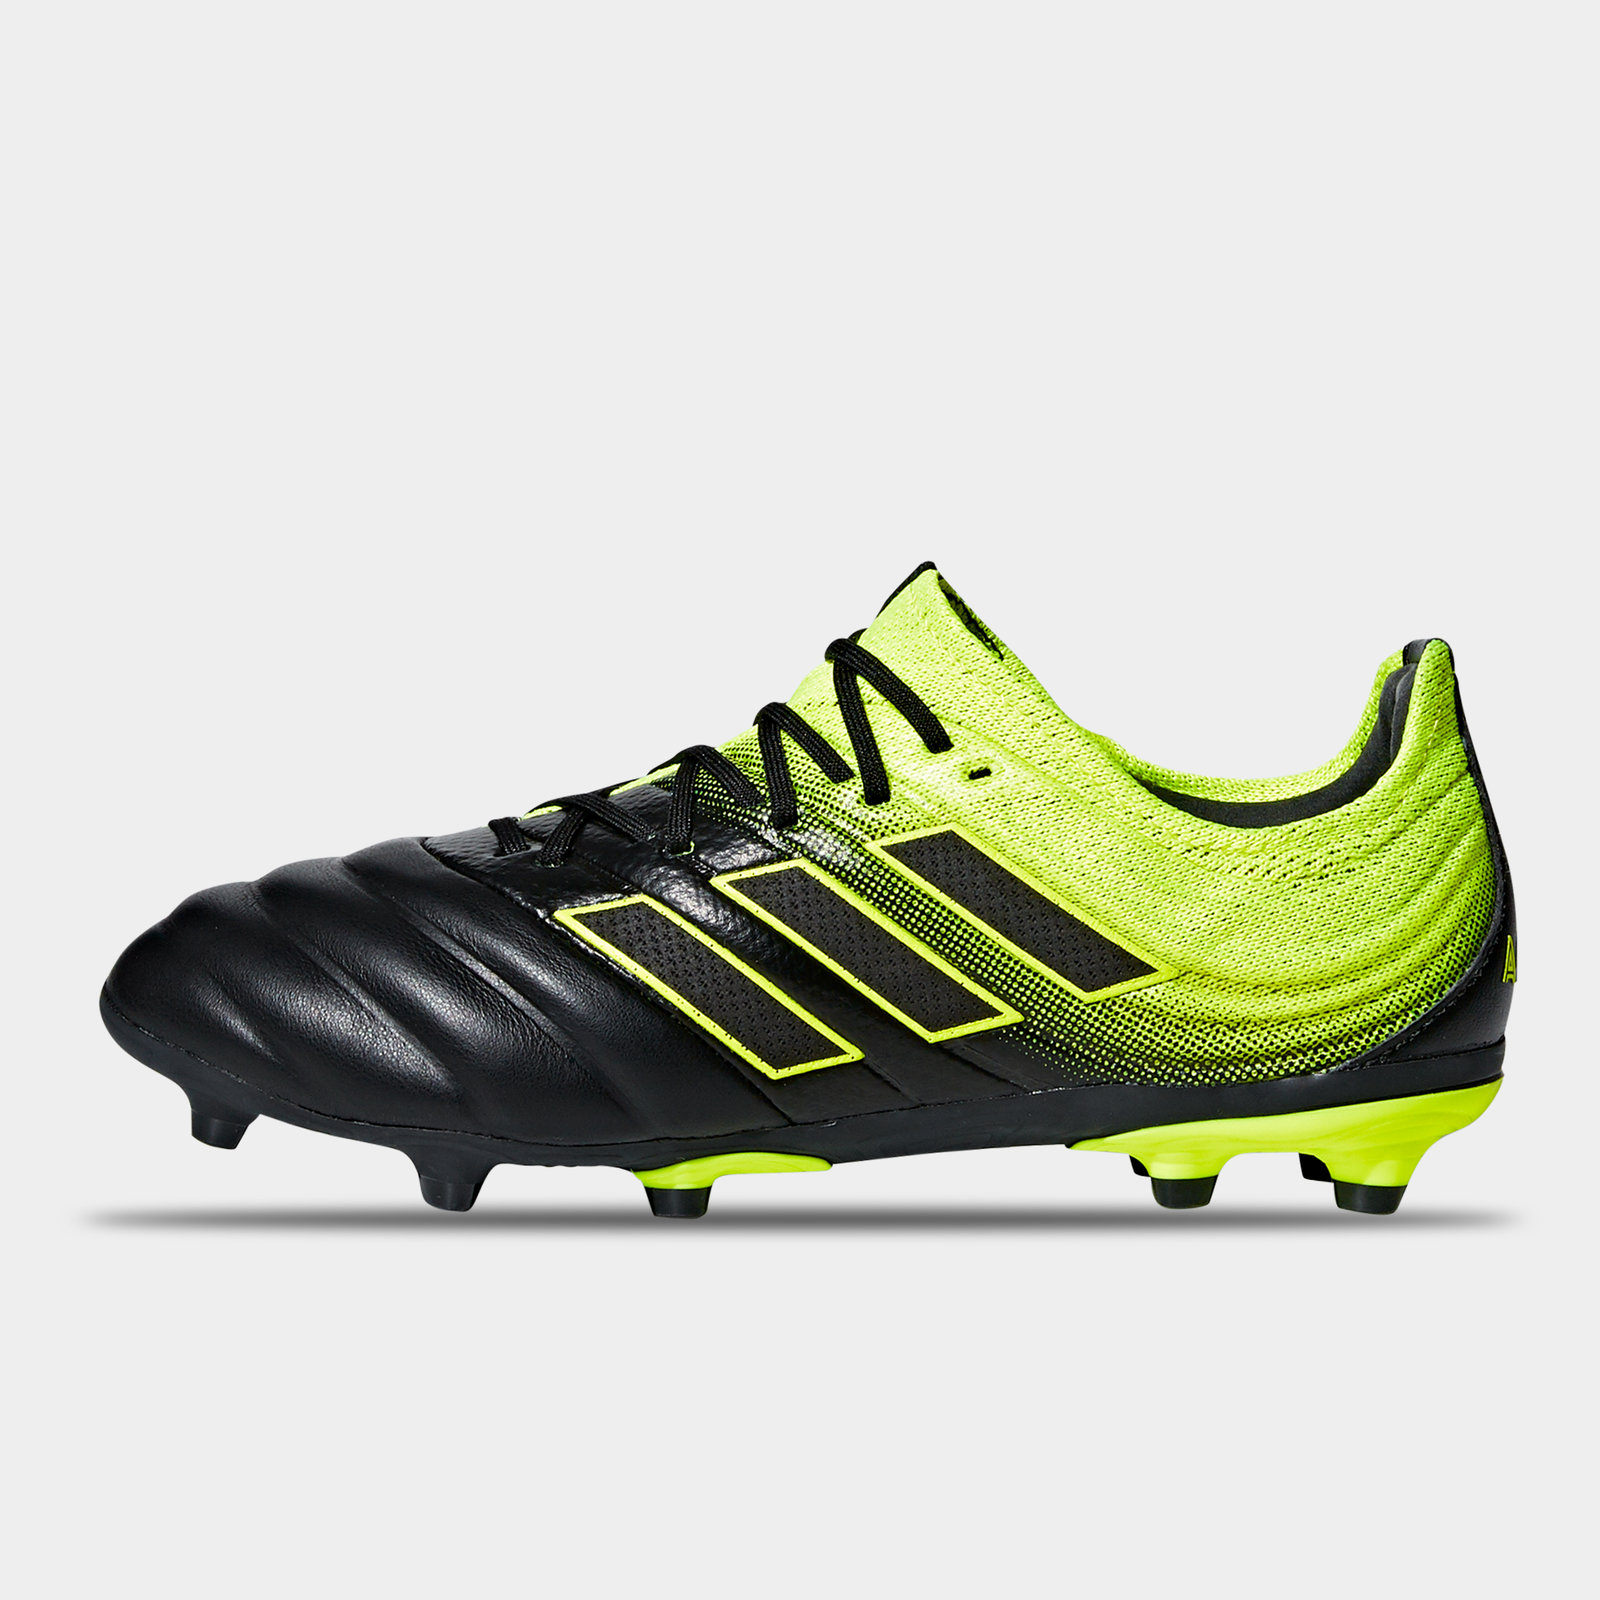 25423302b64ce adidas Copa 19.1 Firm Ground Kids Football Boots Studs Trainers Shoes Black